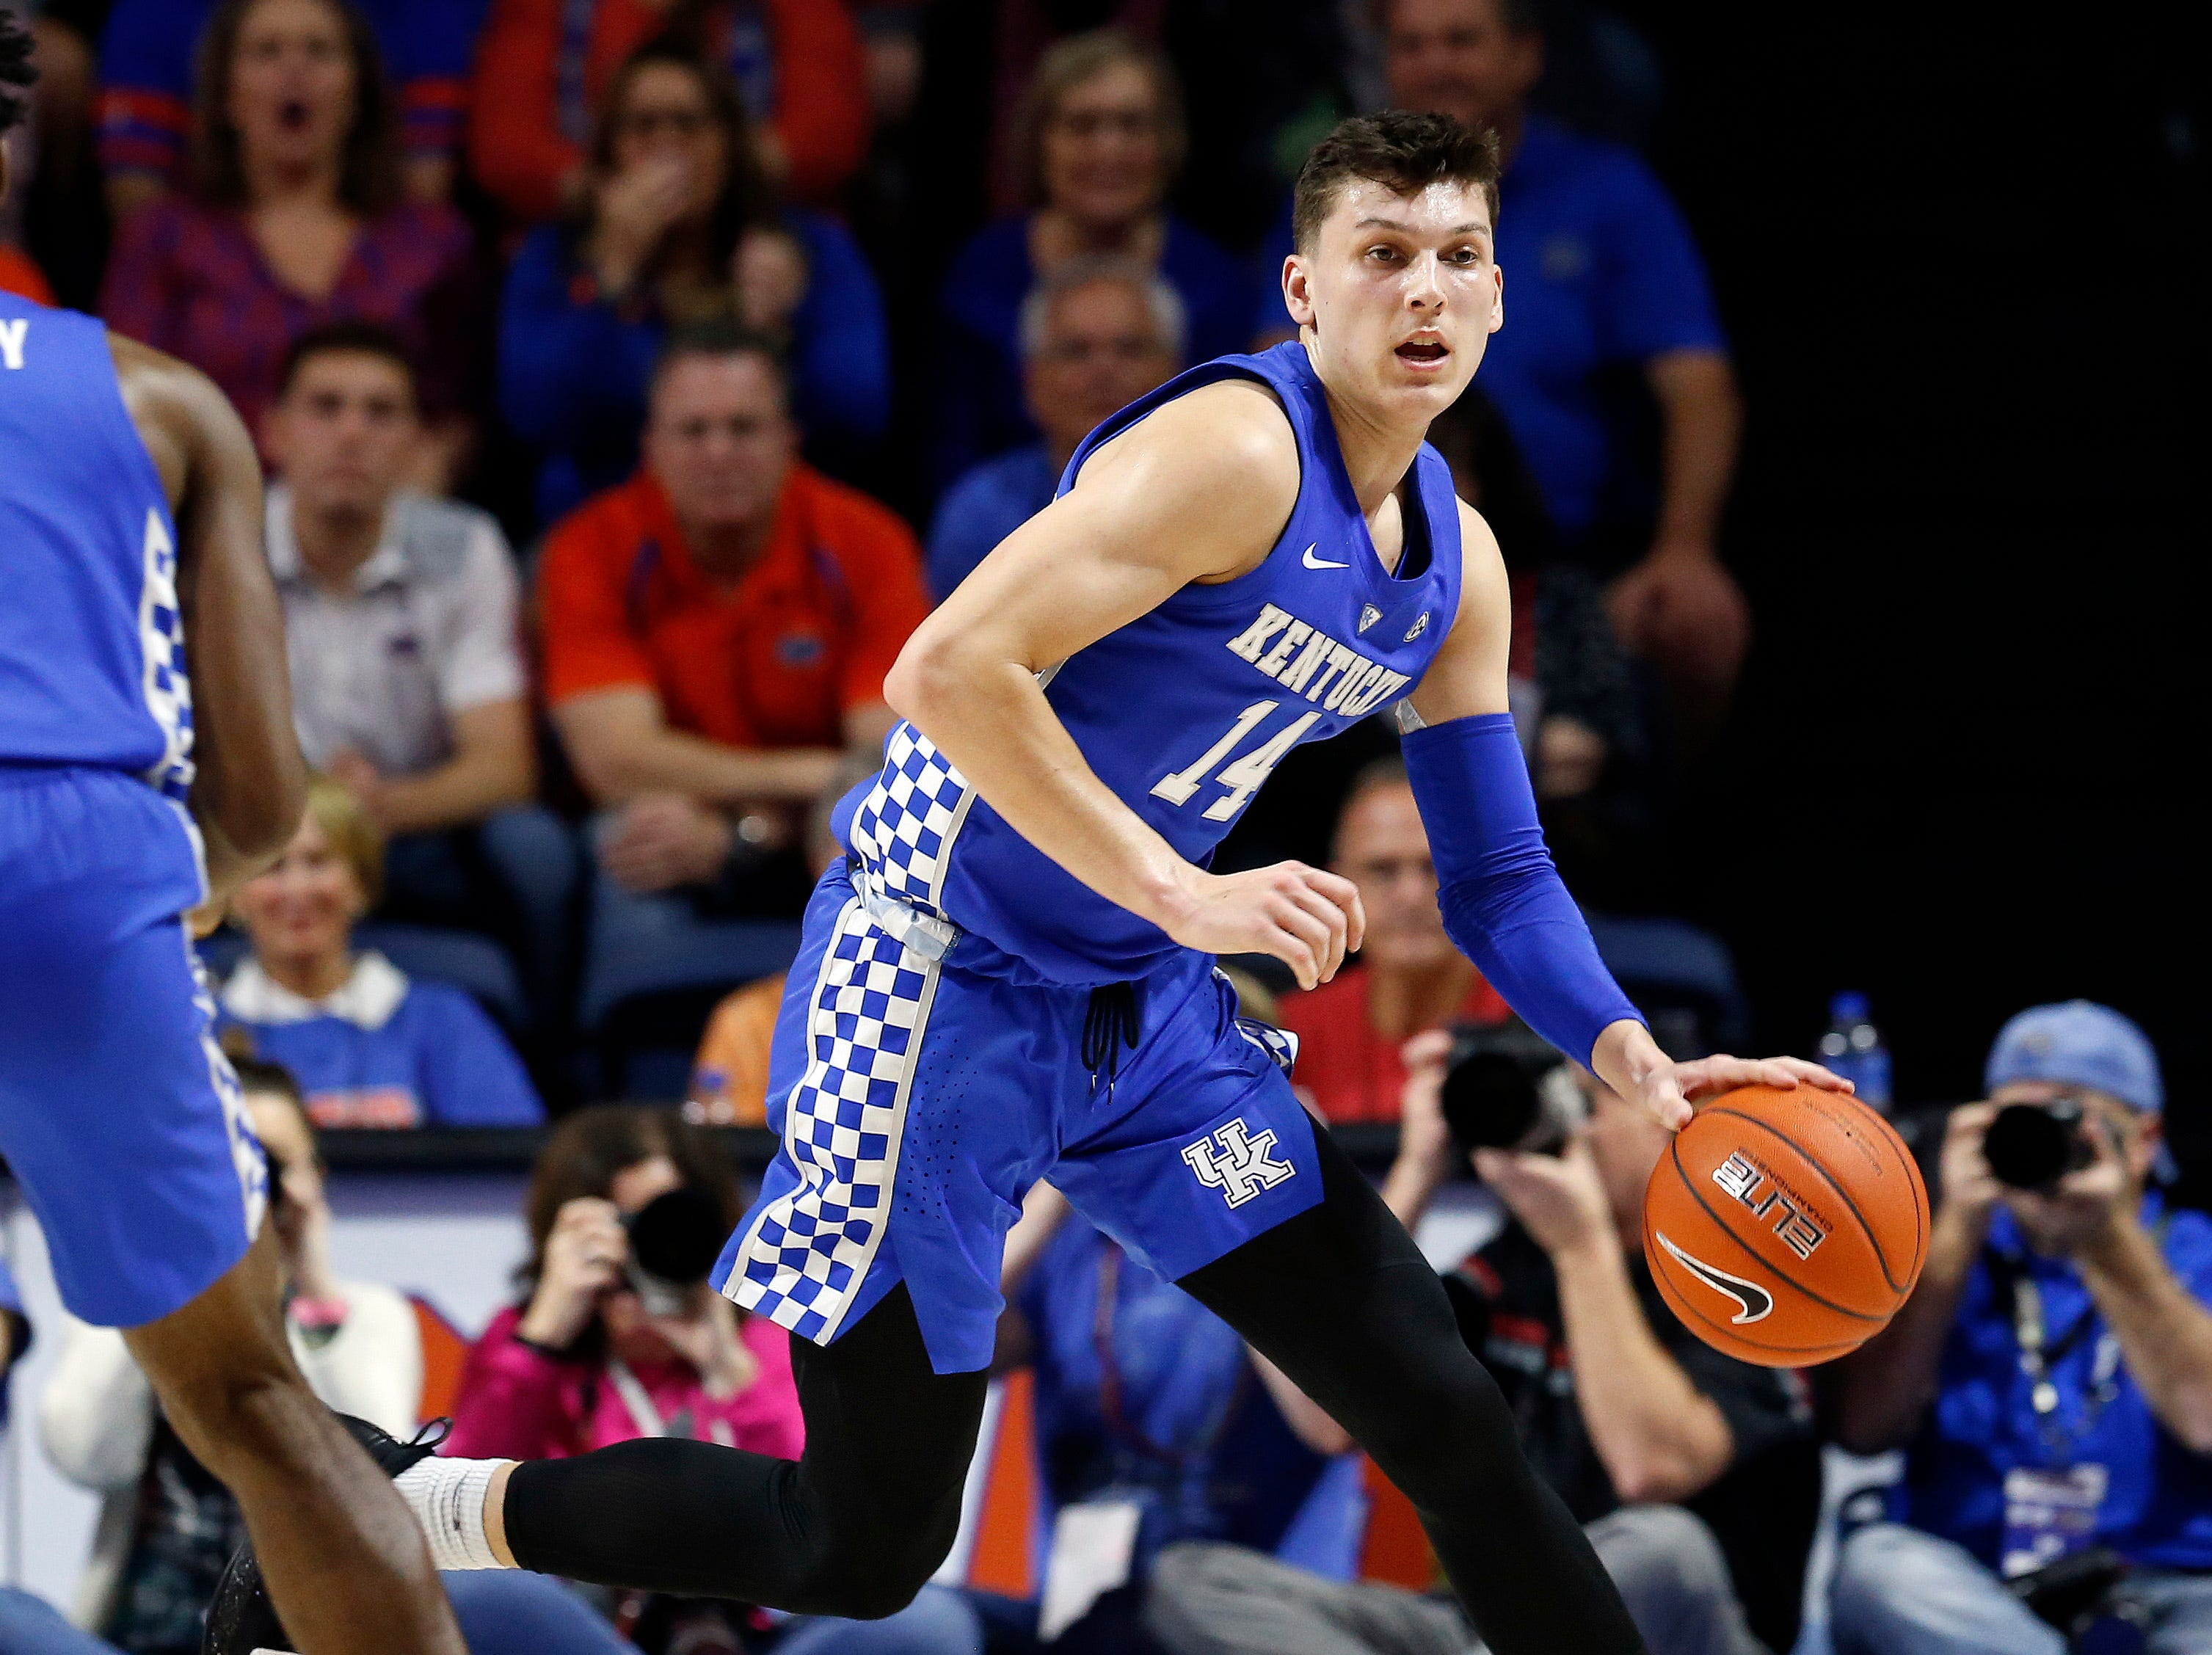 Kentucky Wildcats guard Tyler Herro (14) drives to the basket against the Florida Gators during the first half at Exactech Arena in Gainesville, Florida, on Saturday, Feb. 2, 2019.